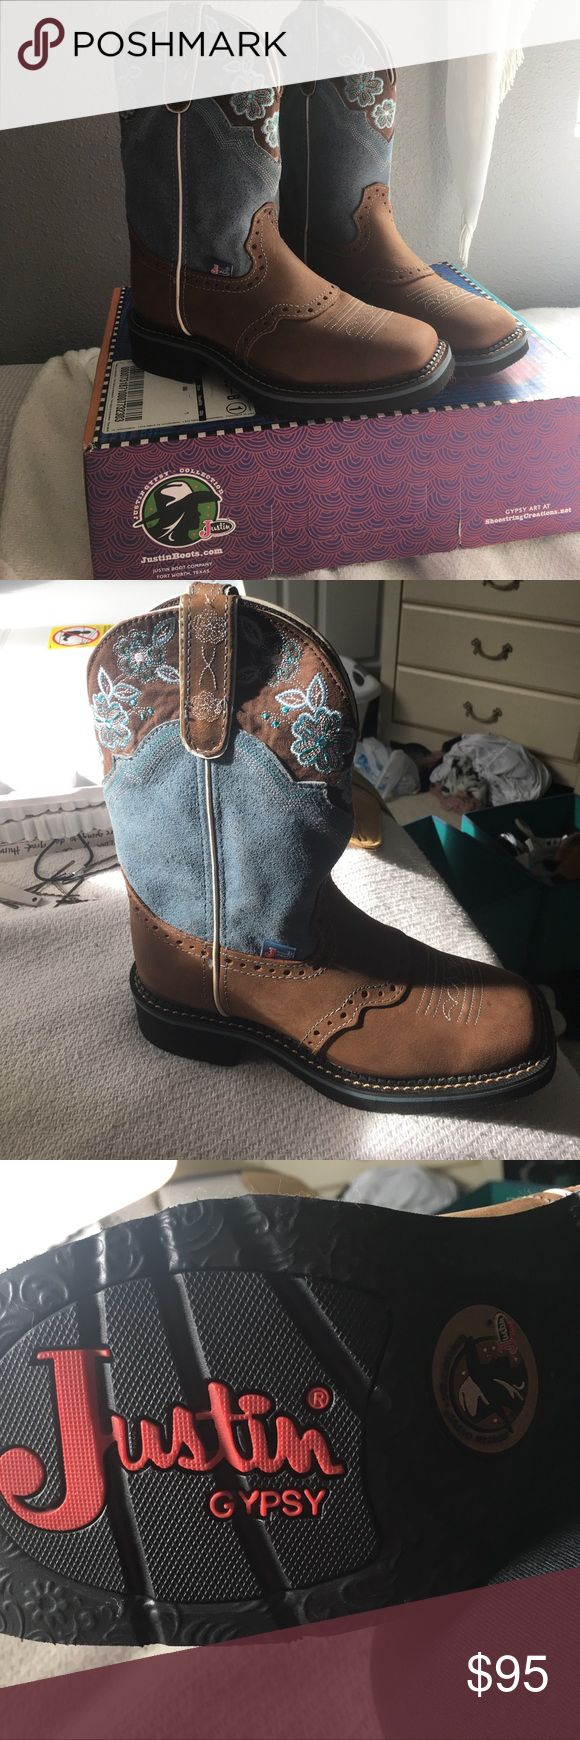 Justin Boots pair of cow girl boots NEVER worn! Brand new cow girls boots never worn, still in original box. Brown and blue embroidered flower collar. Style number L9950 size 6. Justin Boots Shoes